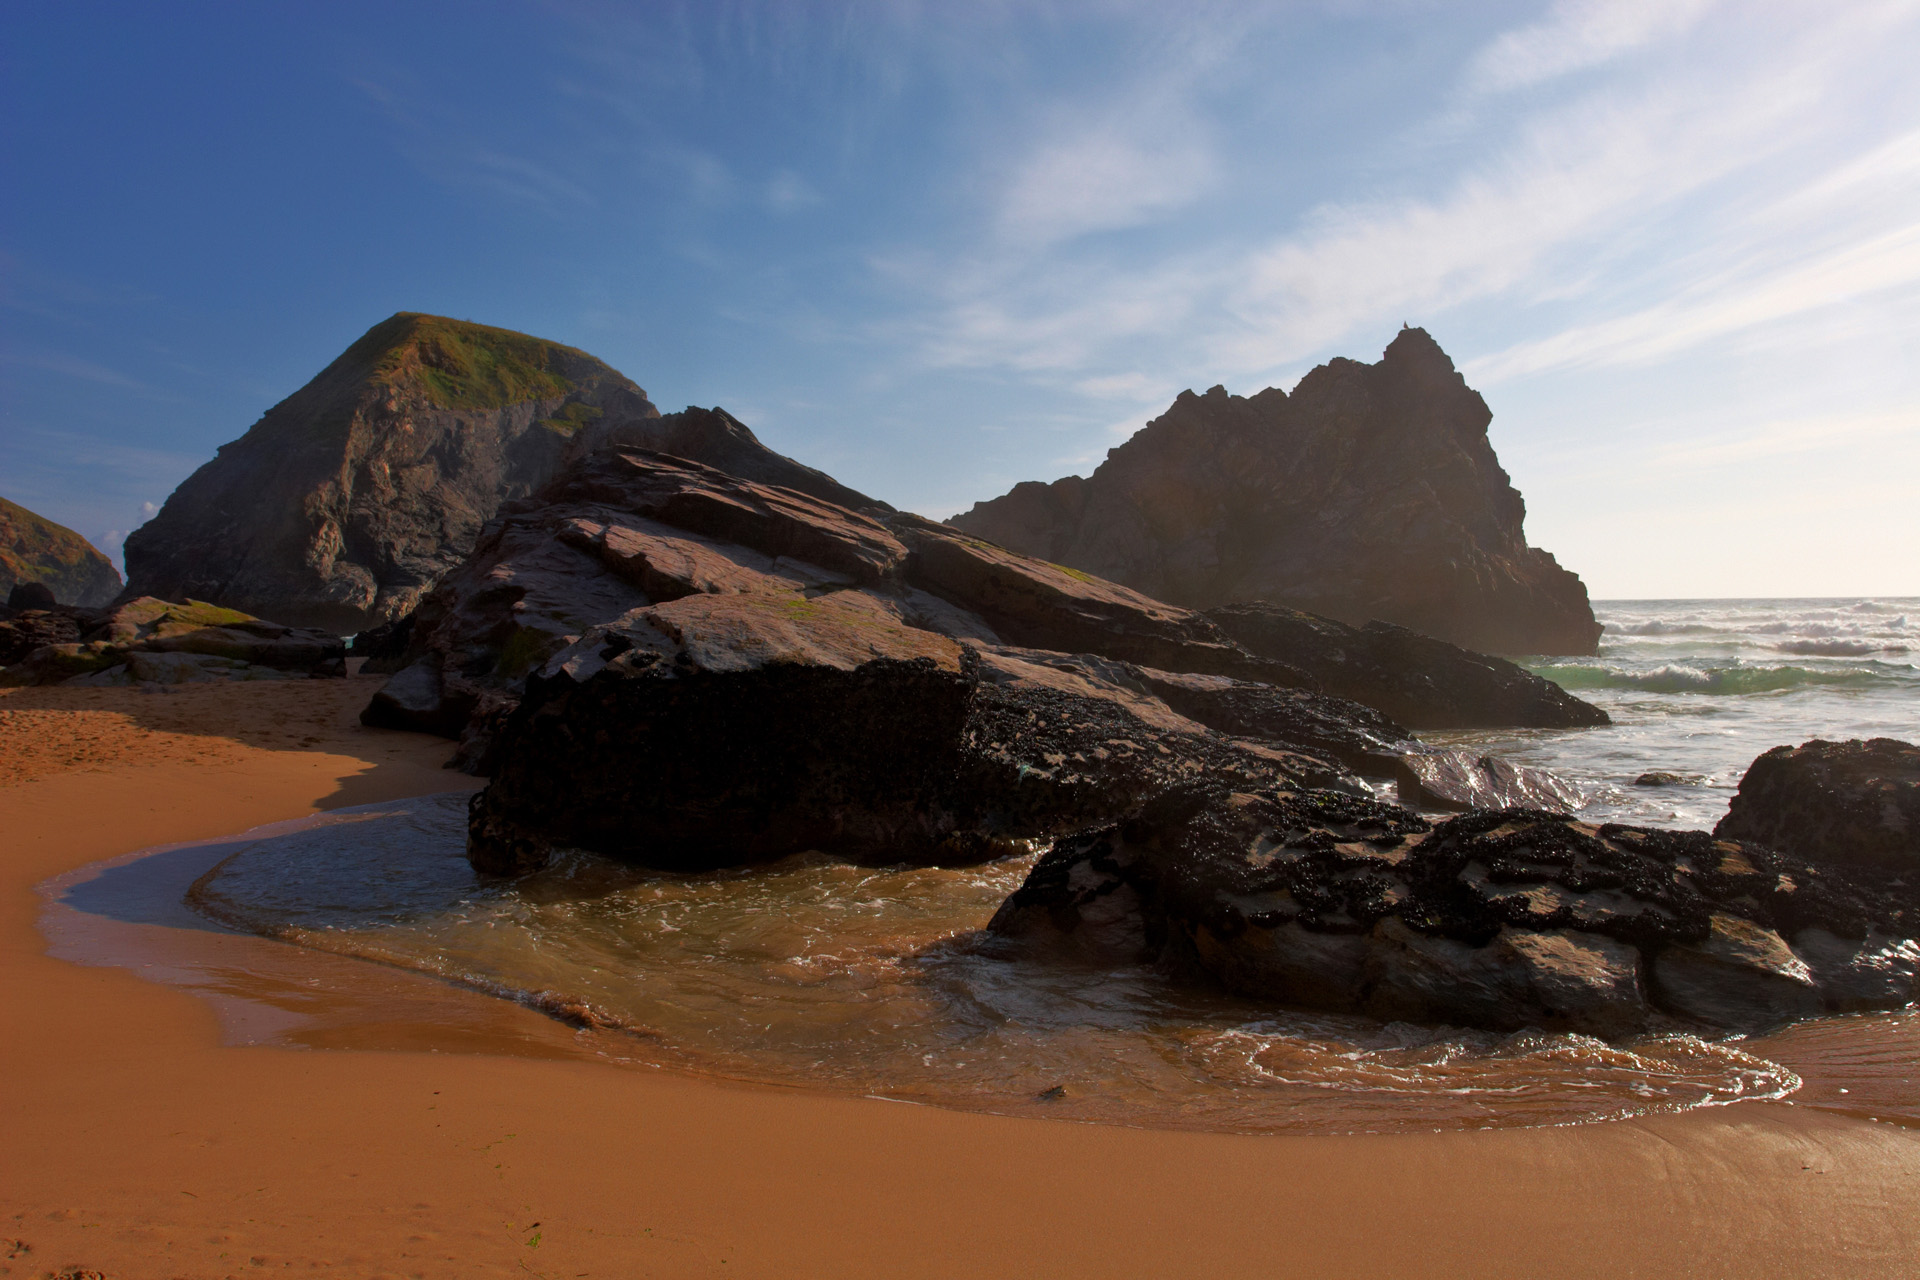 Rock formations in the wet sand at Bedruthan Steps